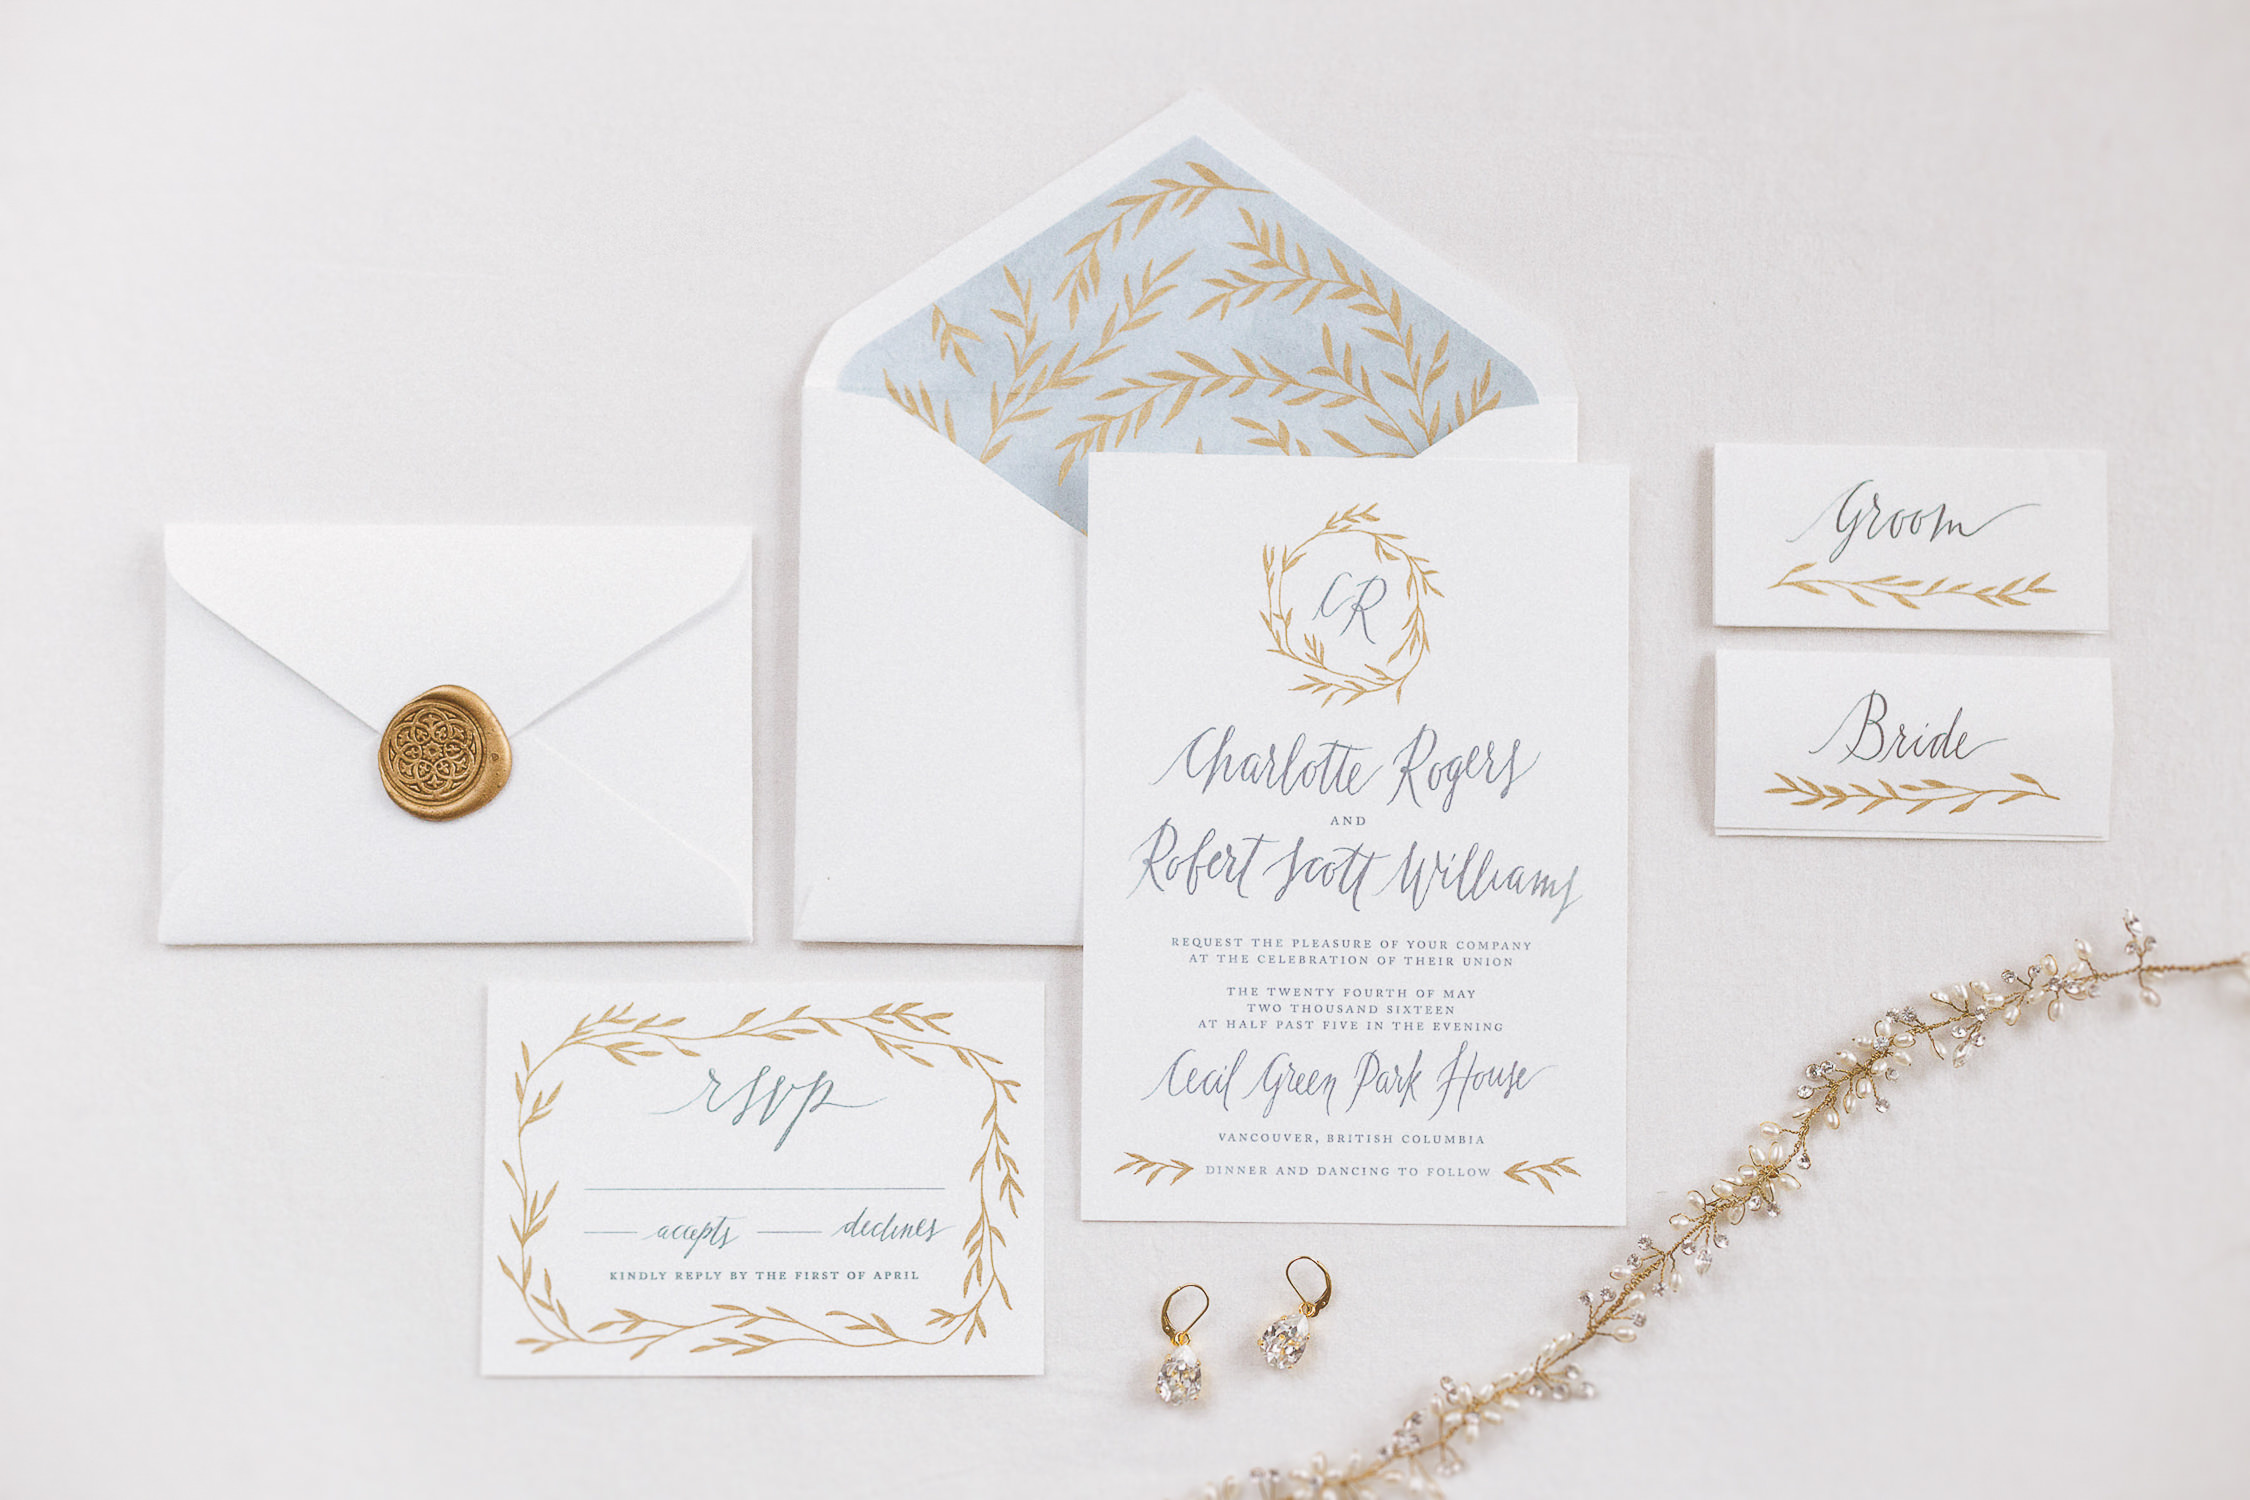 Bespoke-wedding-invitation-suite-with-modern-calligraphy